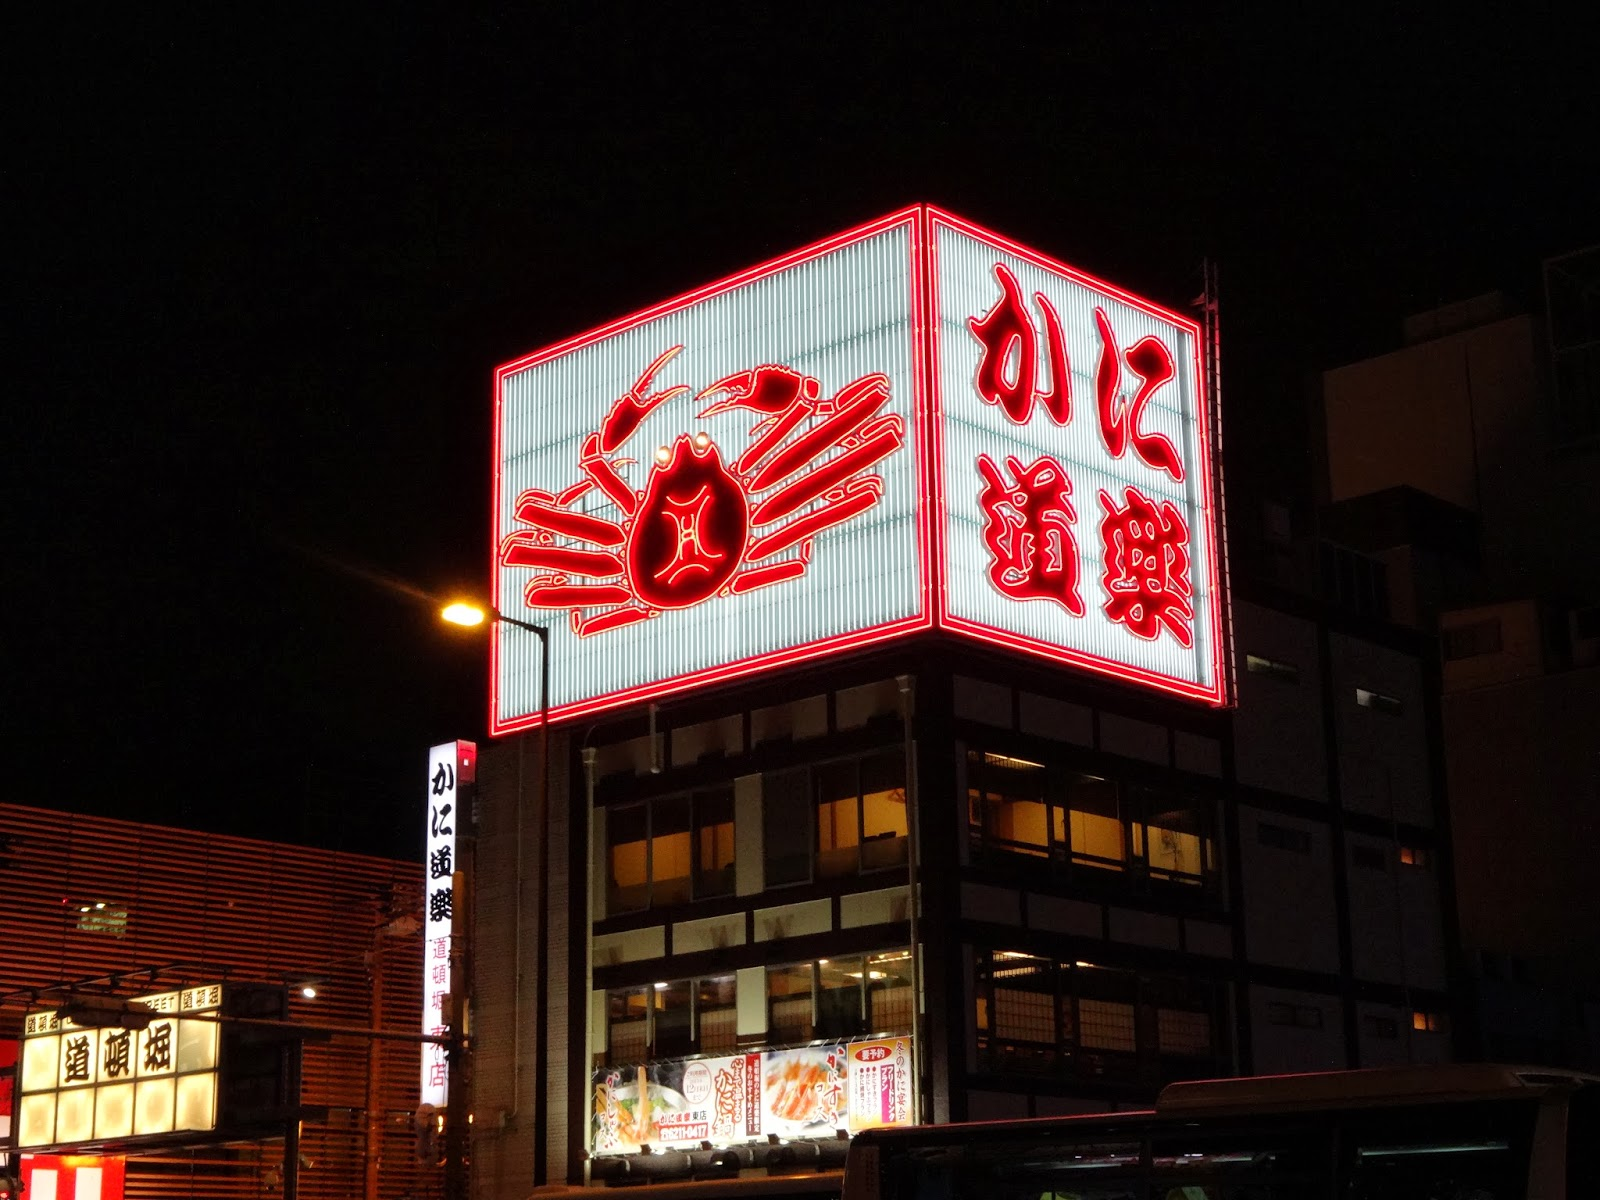 Osaka at night with illuminated crab neon light display